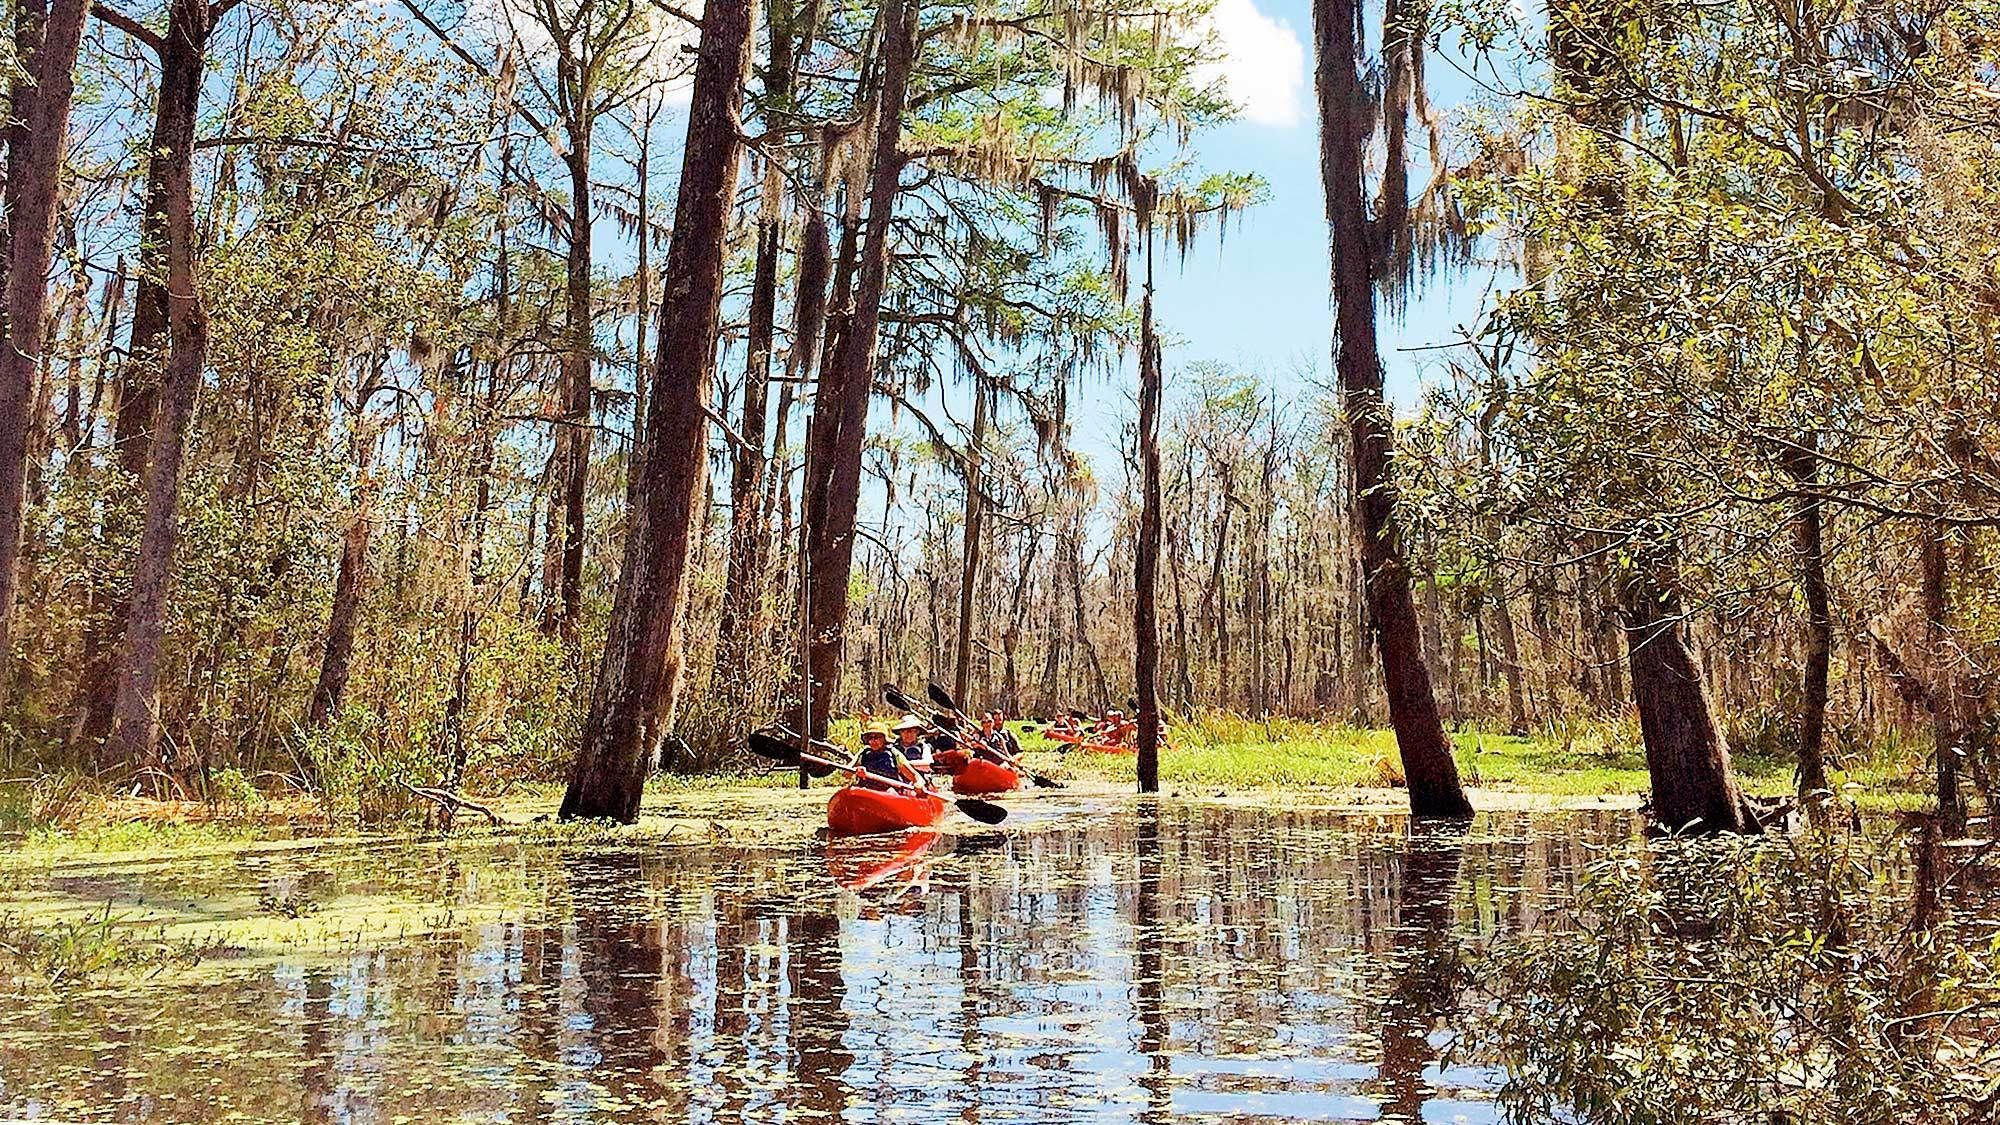 View on the Honey Island Kayak Swamp Tours